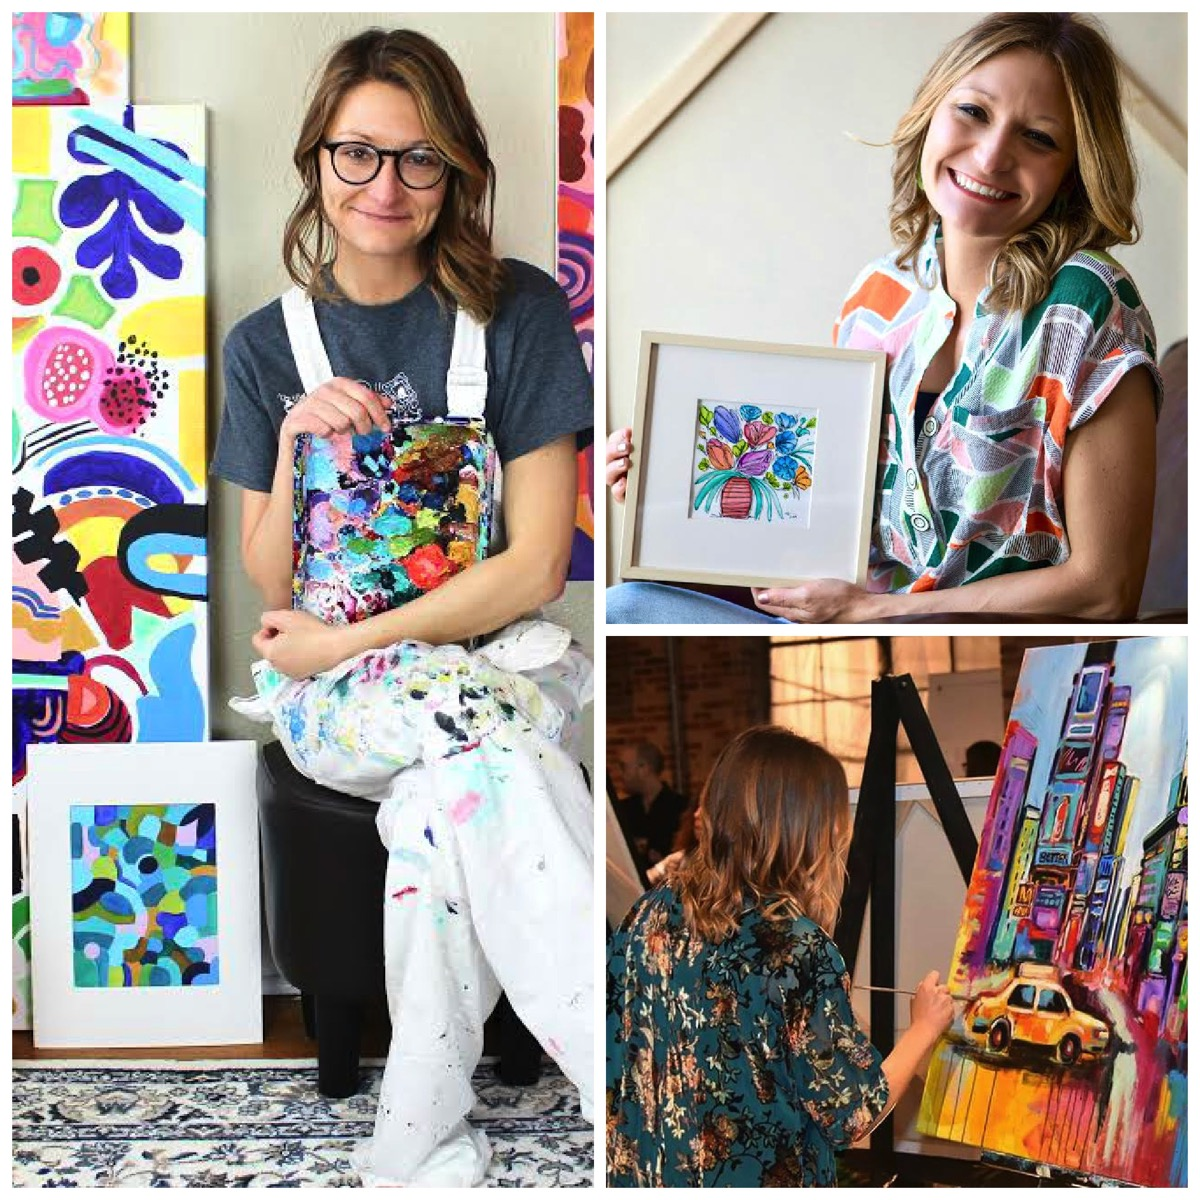 Jessica hitchcock colorful paintings colorful home decor art